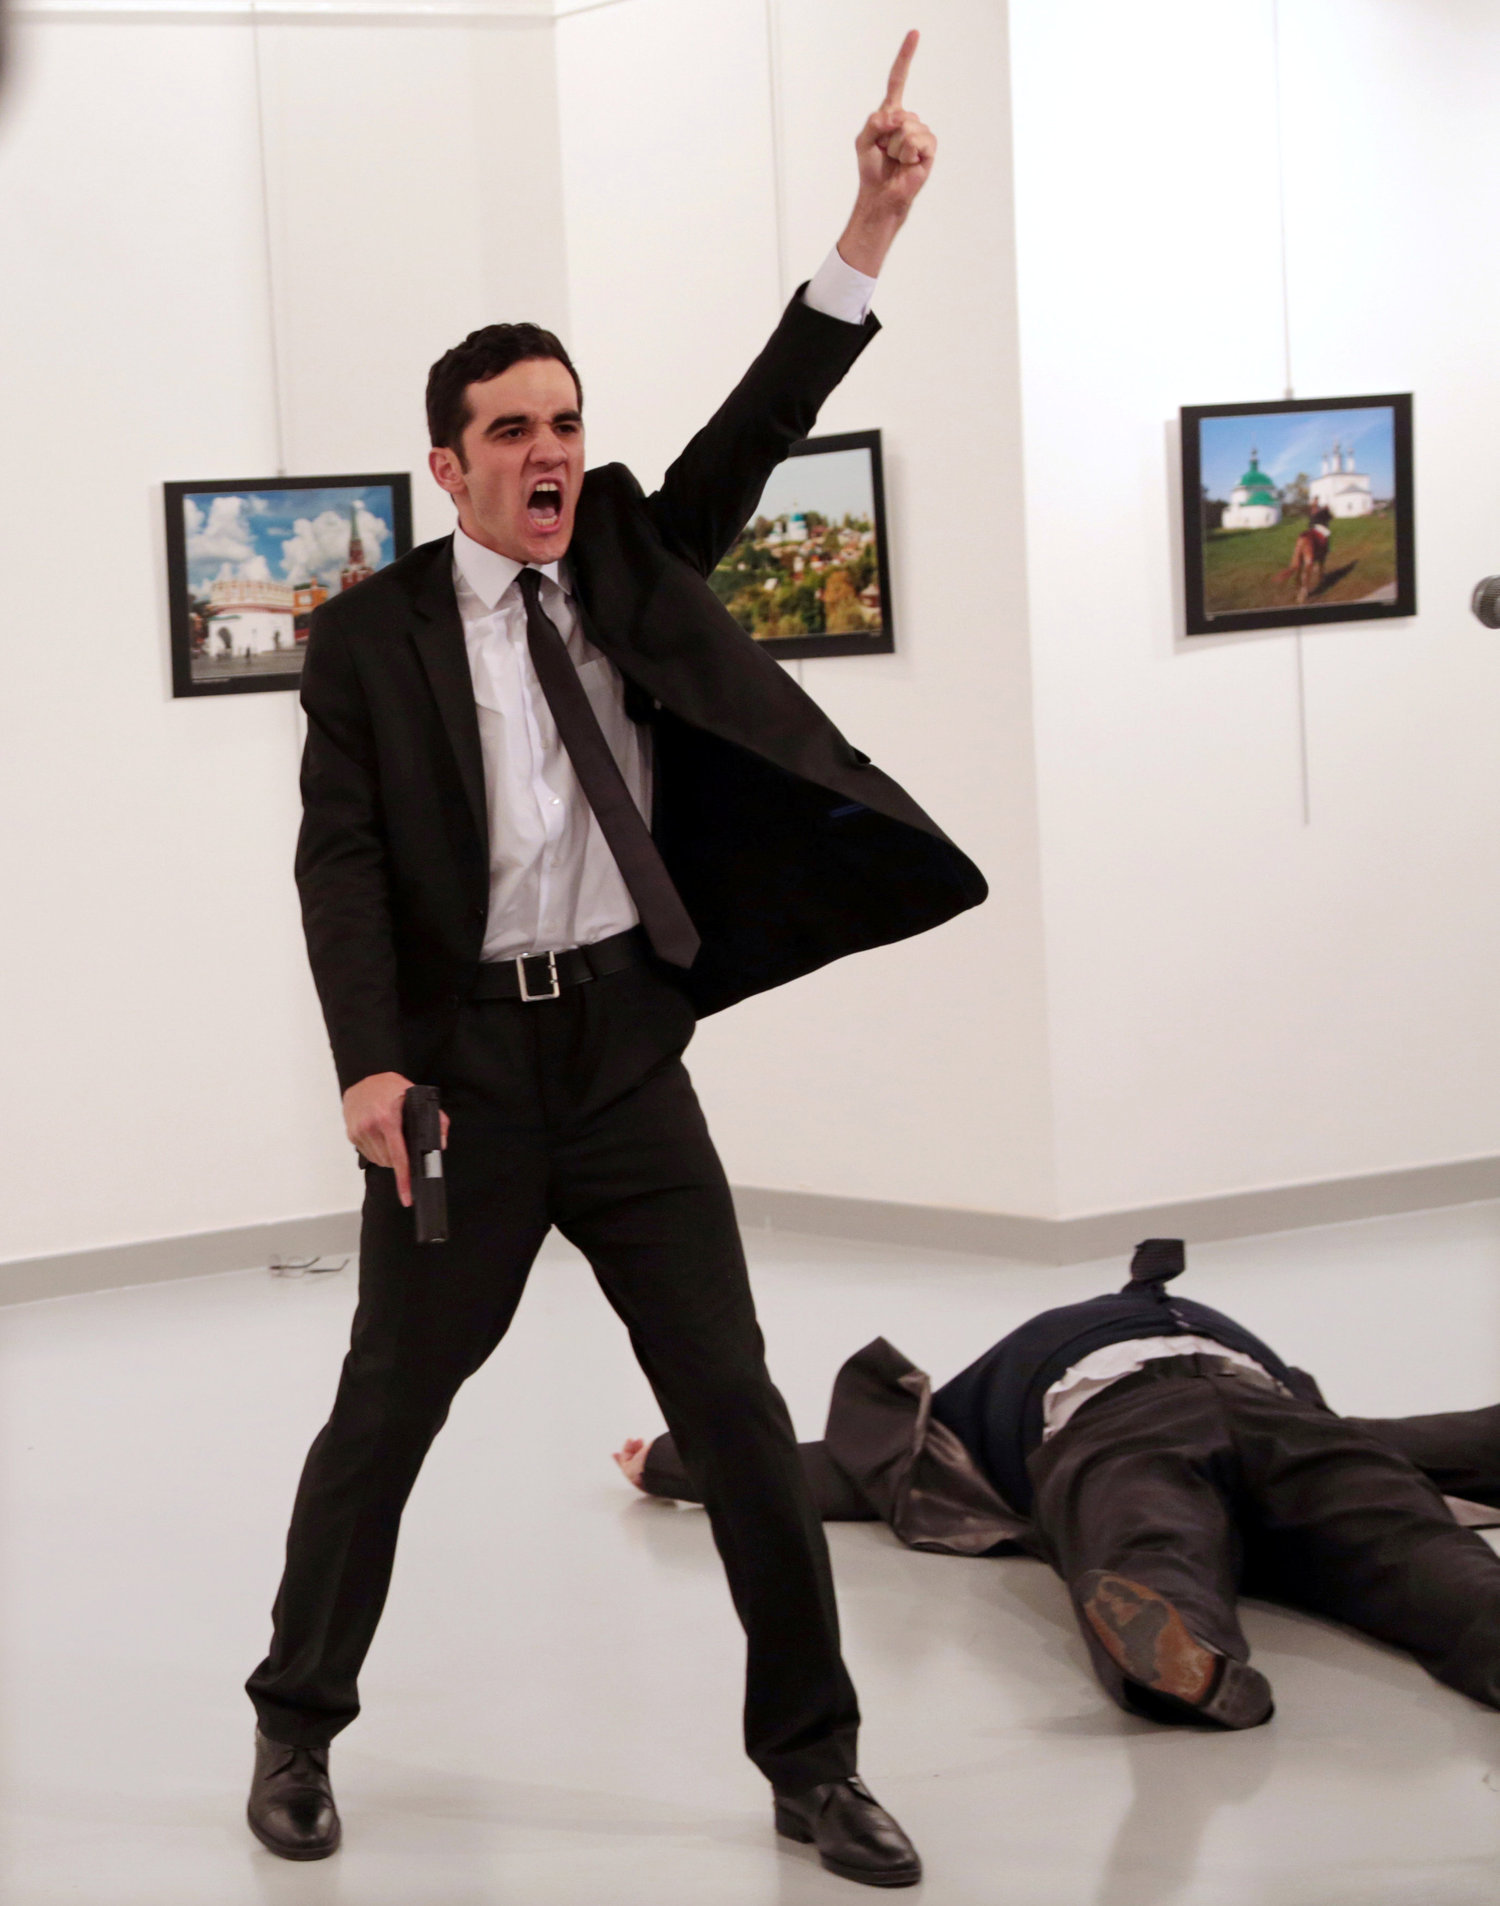 World Press Photo: Morte de embaixador russo é a fotografia do ano